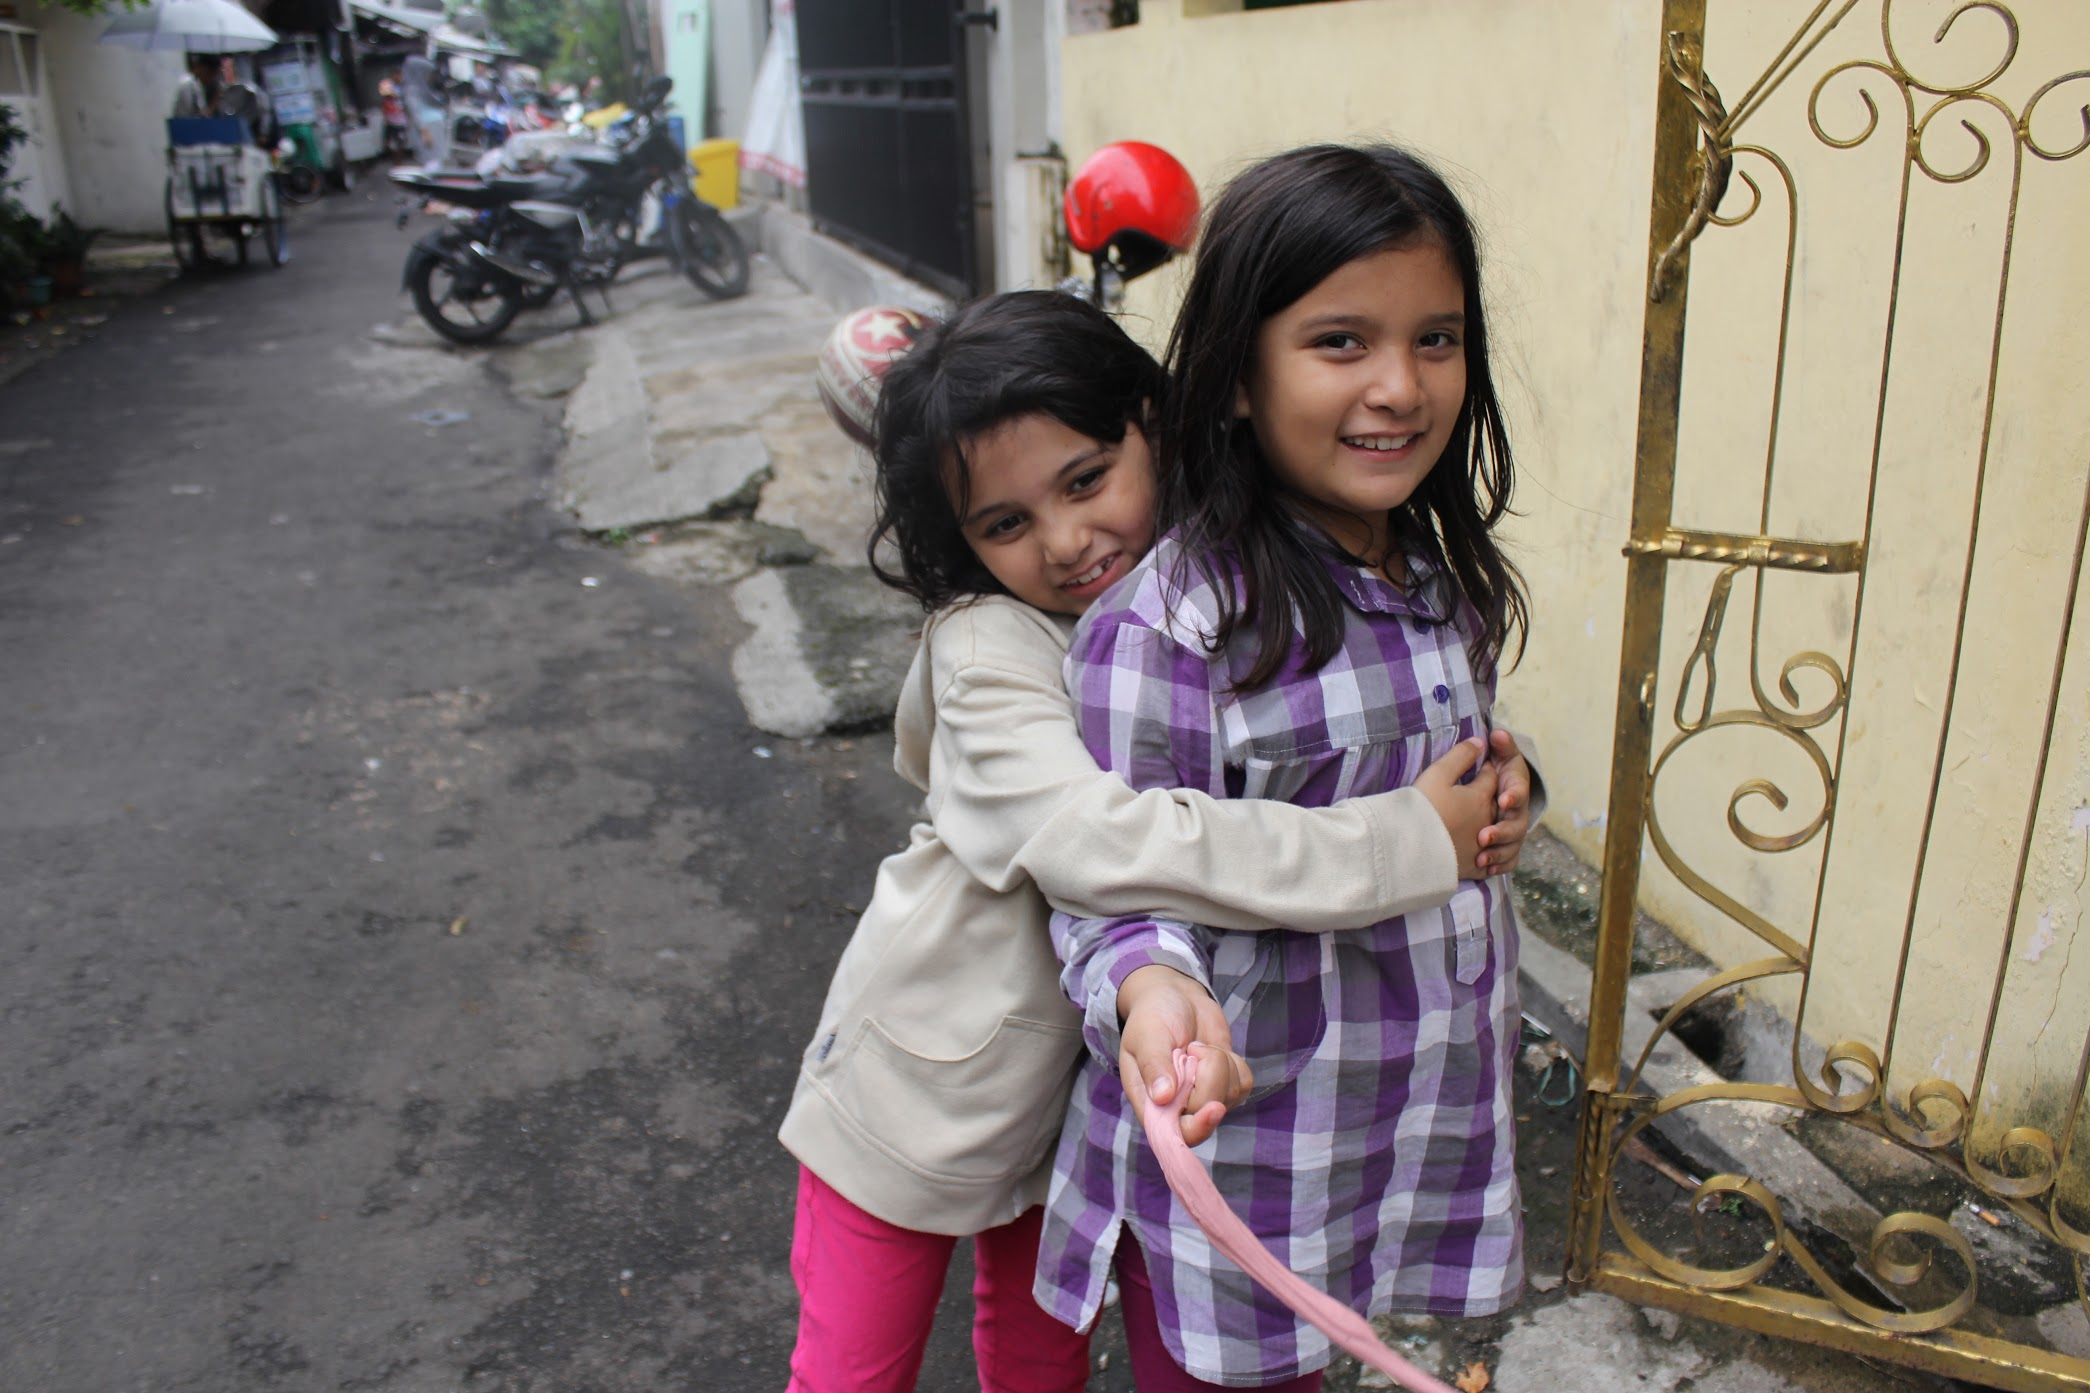 DREAMS. The two young girls wish they could go to school with their friends in the neighborhood. Photo by Han Nguyen/Rappler